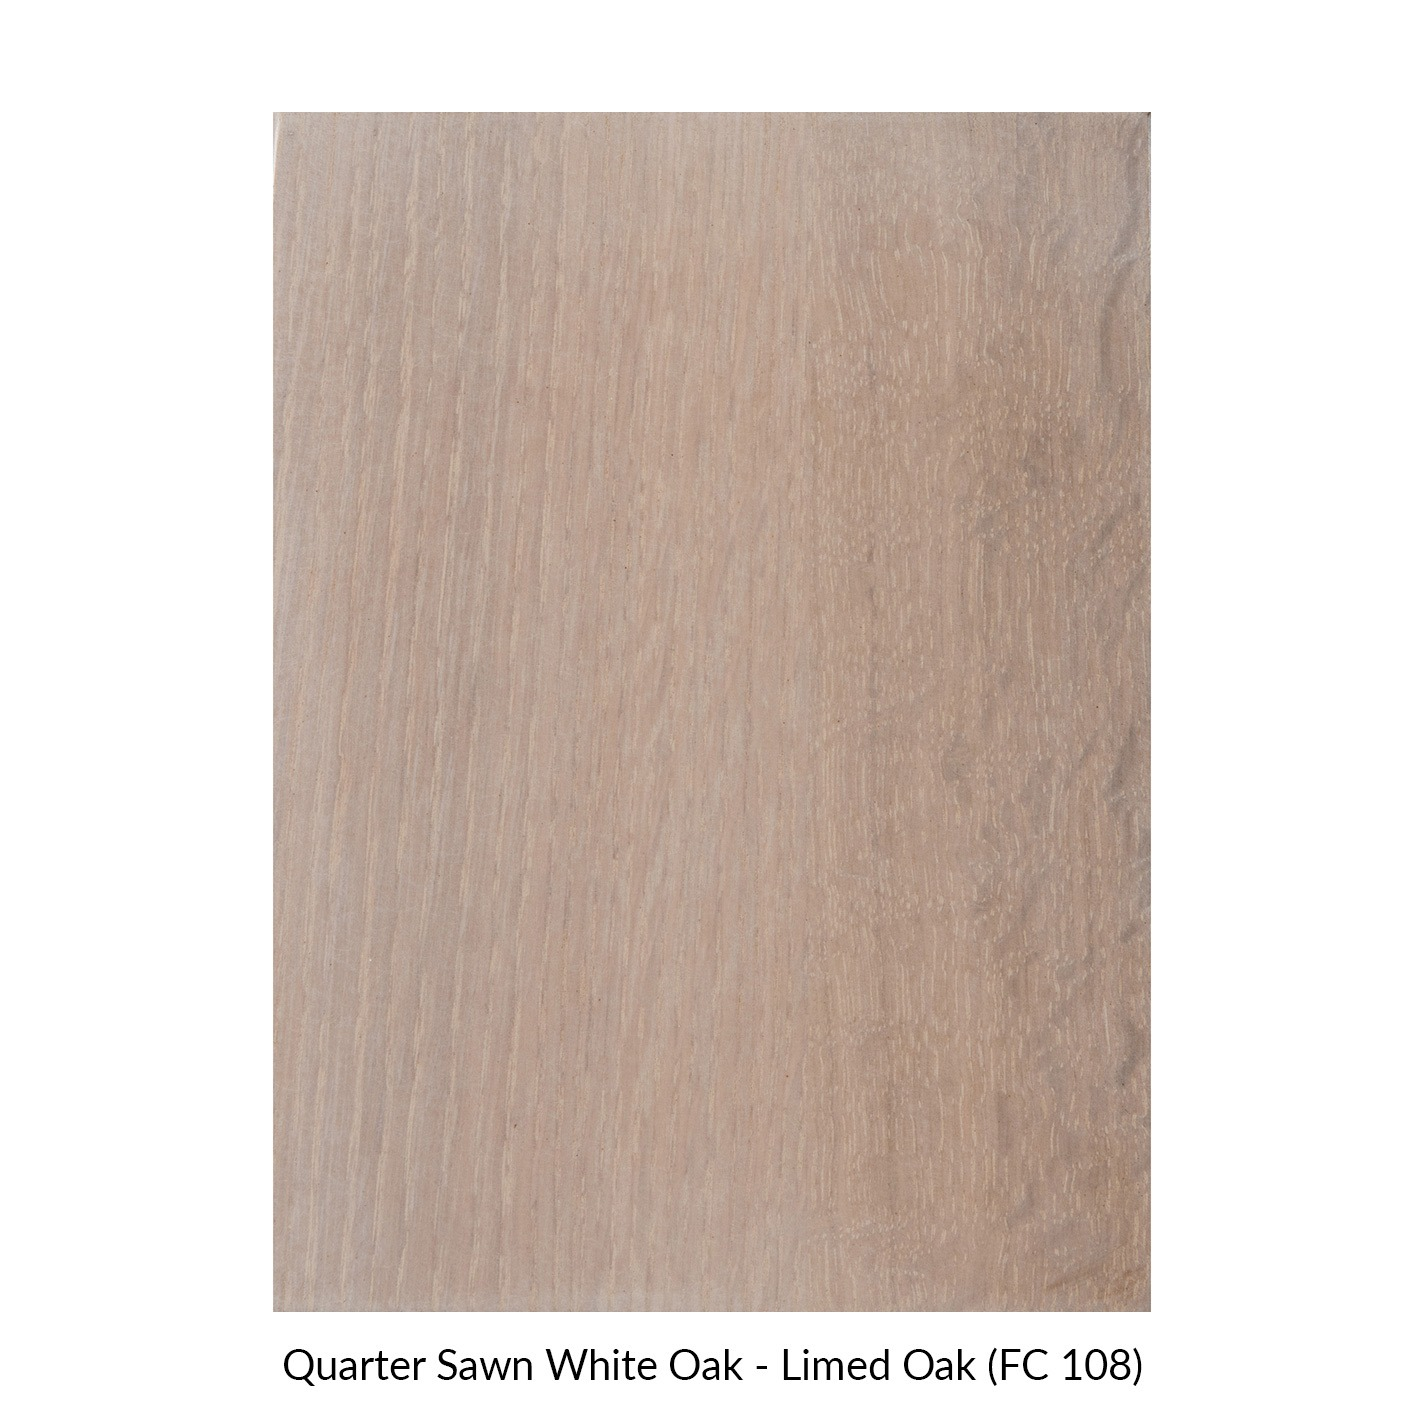 spectrum-quarter-sawn-white-oak-limed-oak-fc-108.jpg